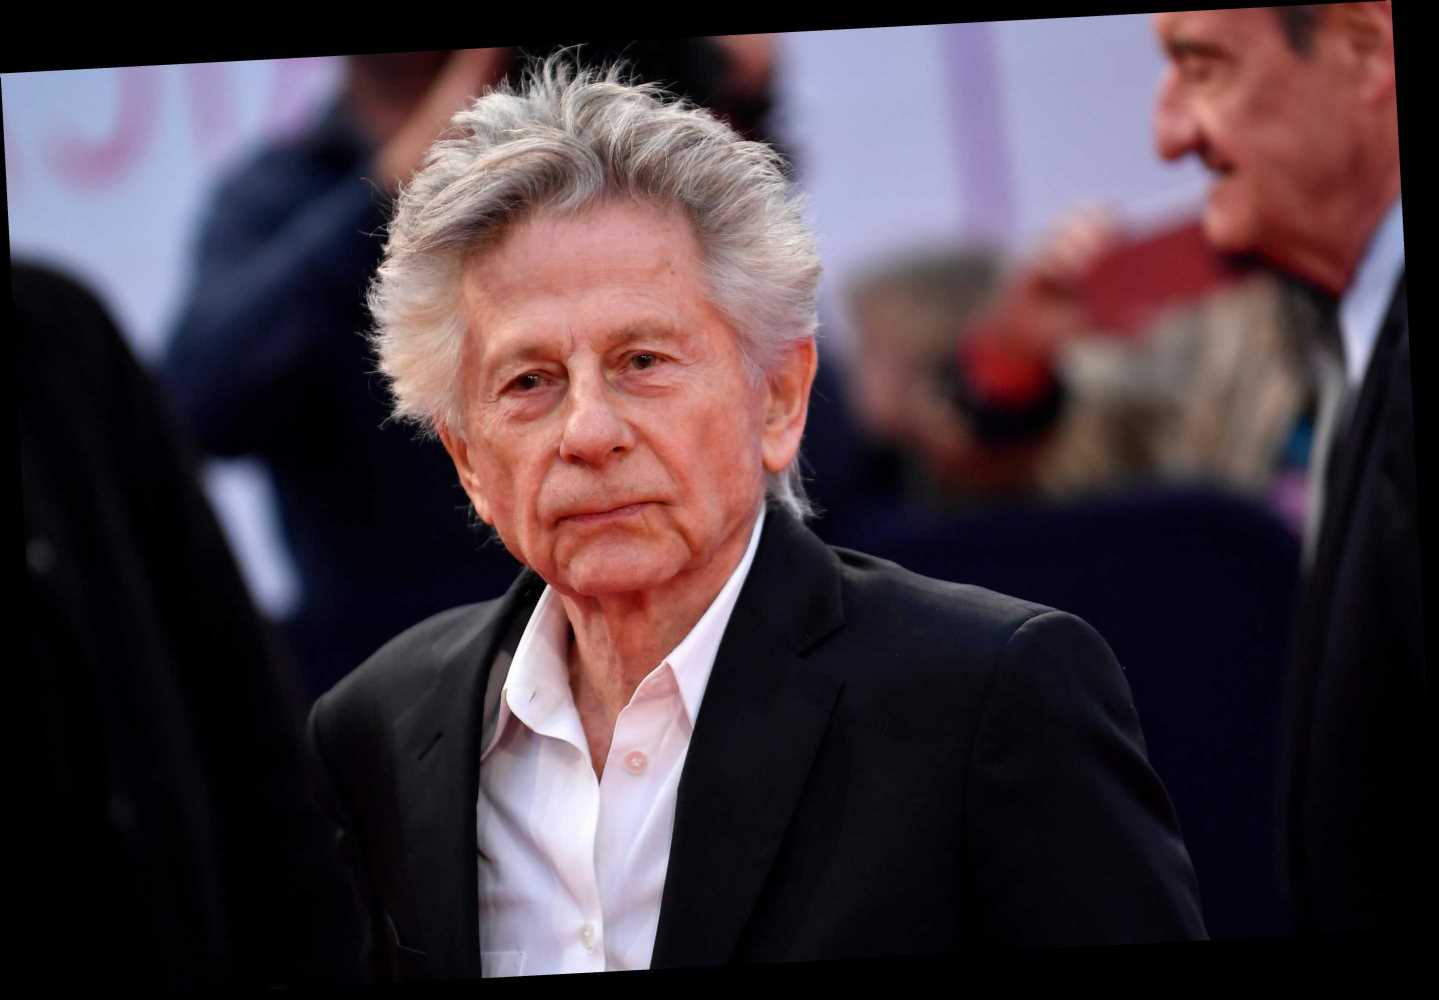 French Actress Accuses Roman Polanski of Raping Her in 1975